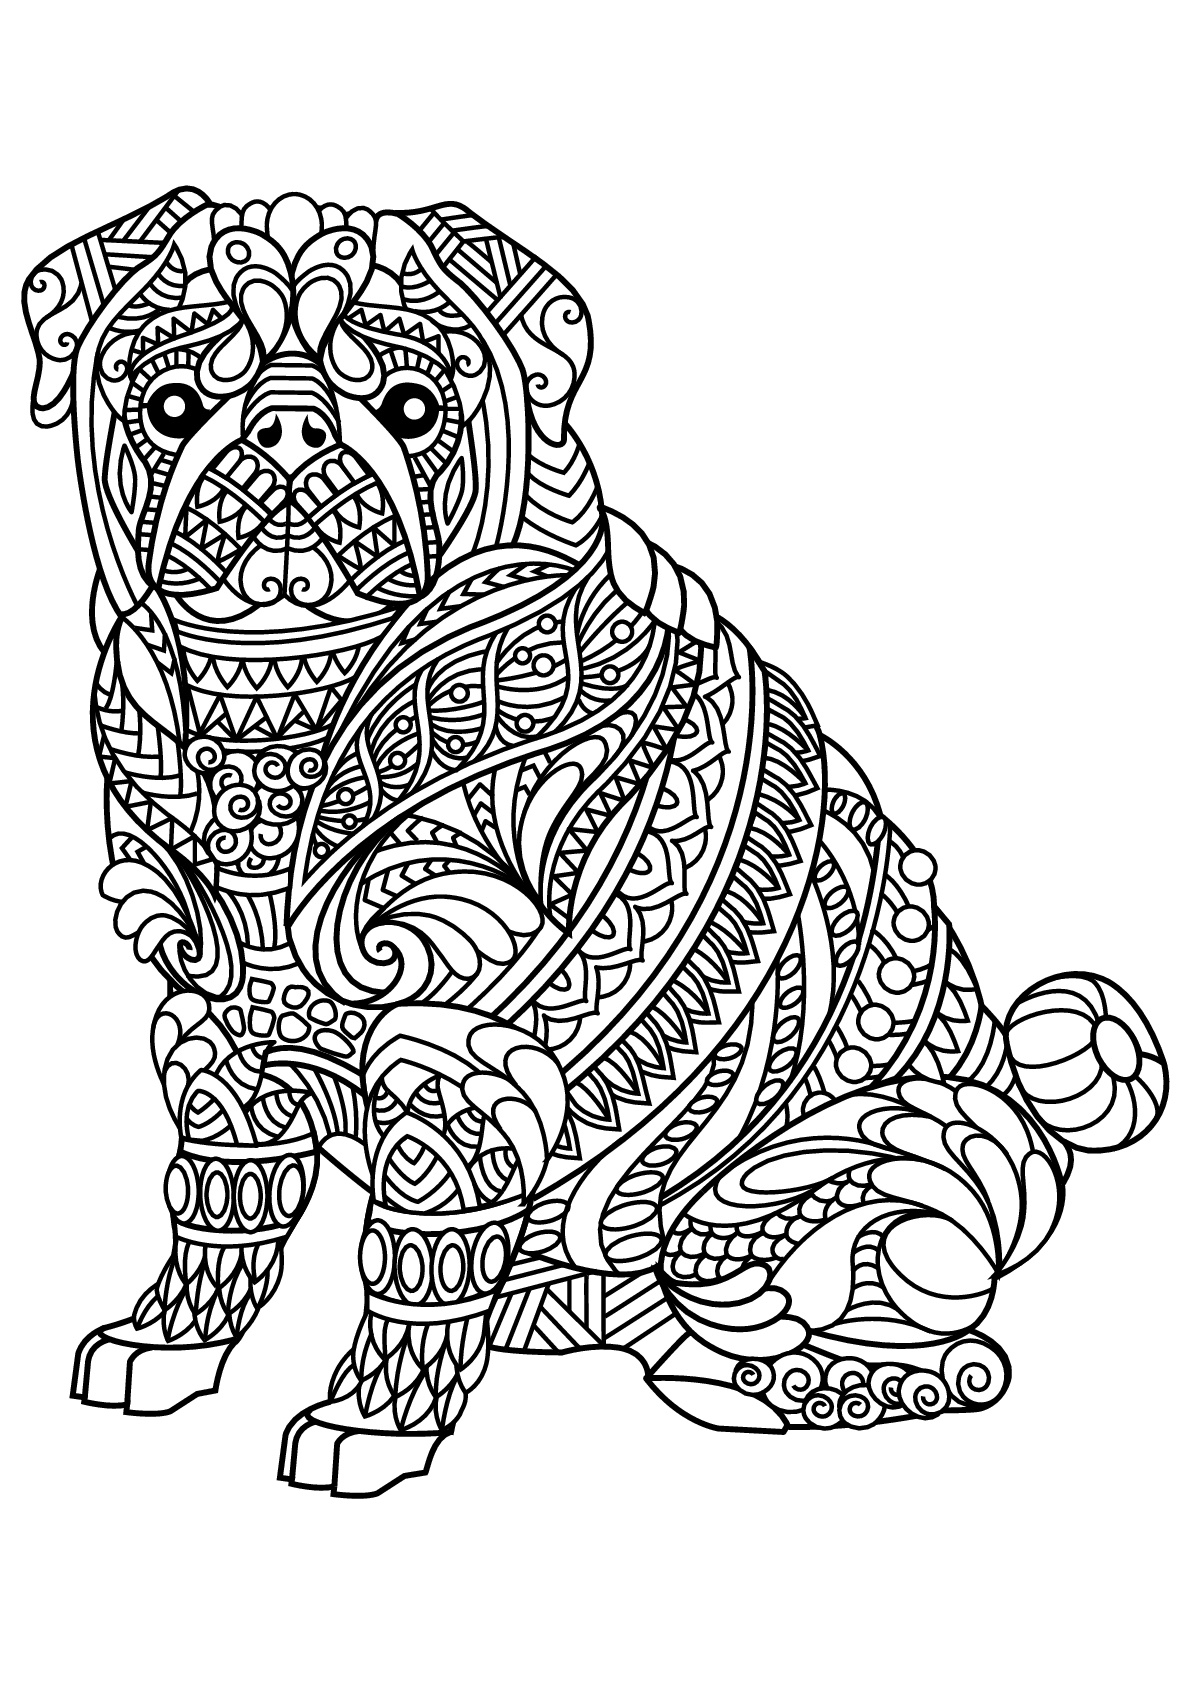 - Bulldog Coloring Pages - Best Coloring Pages For Kids